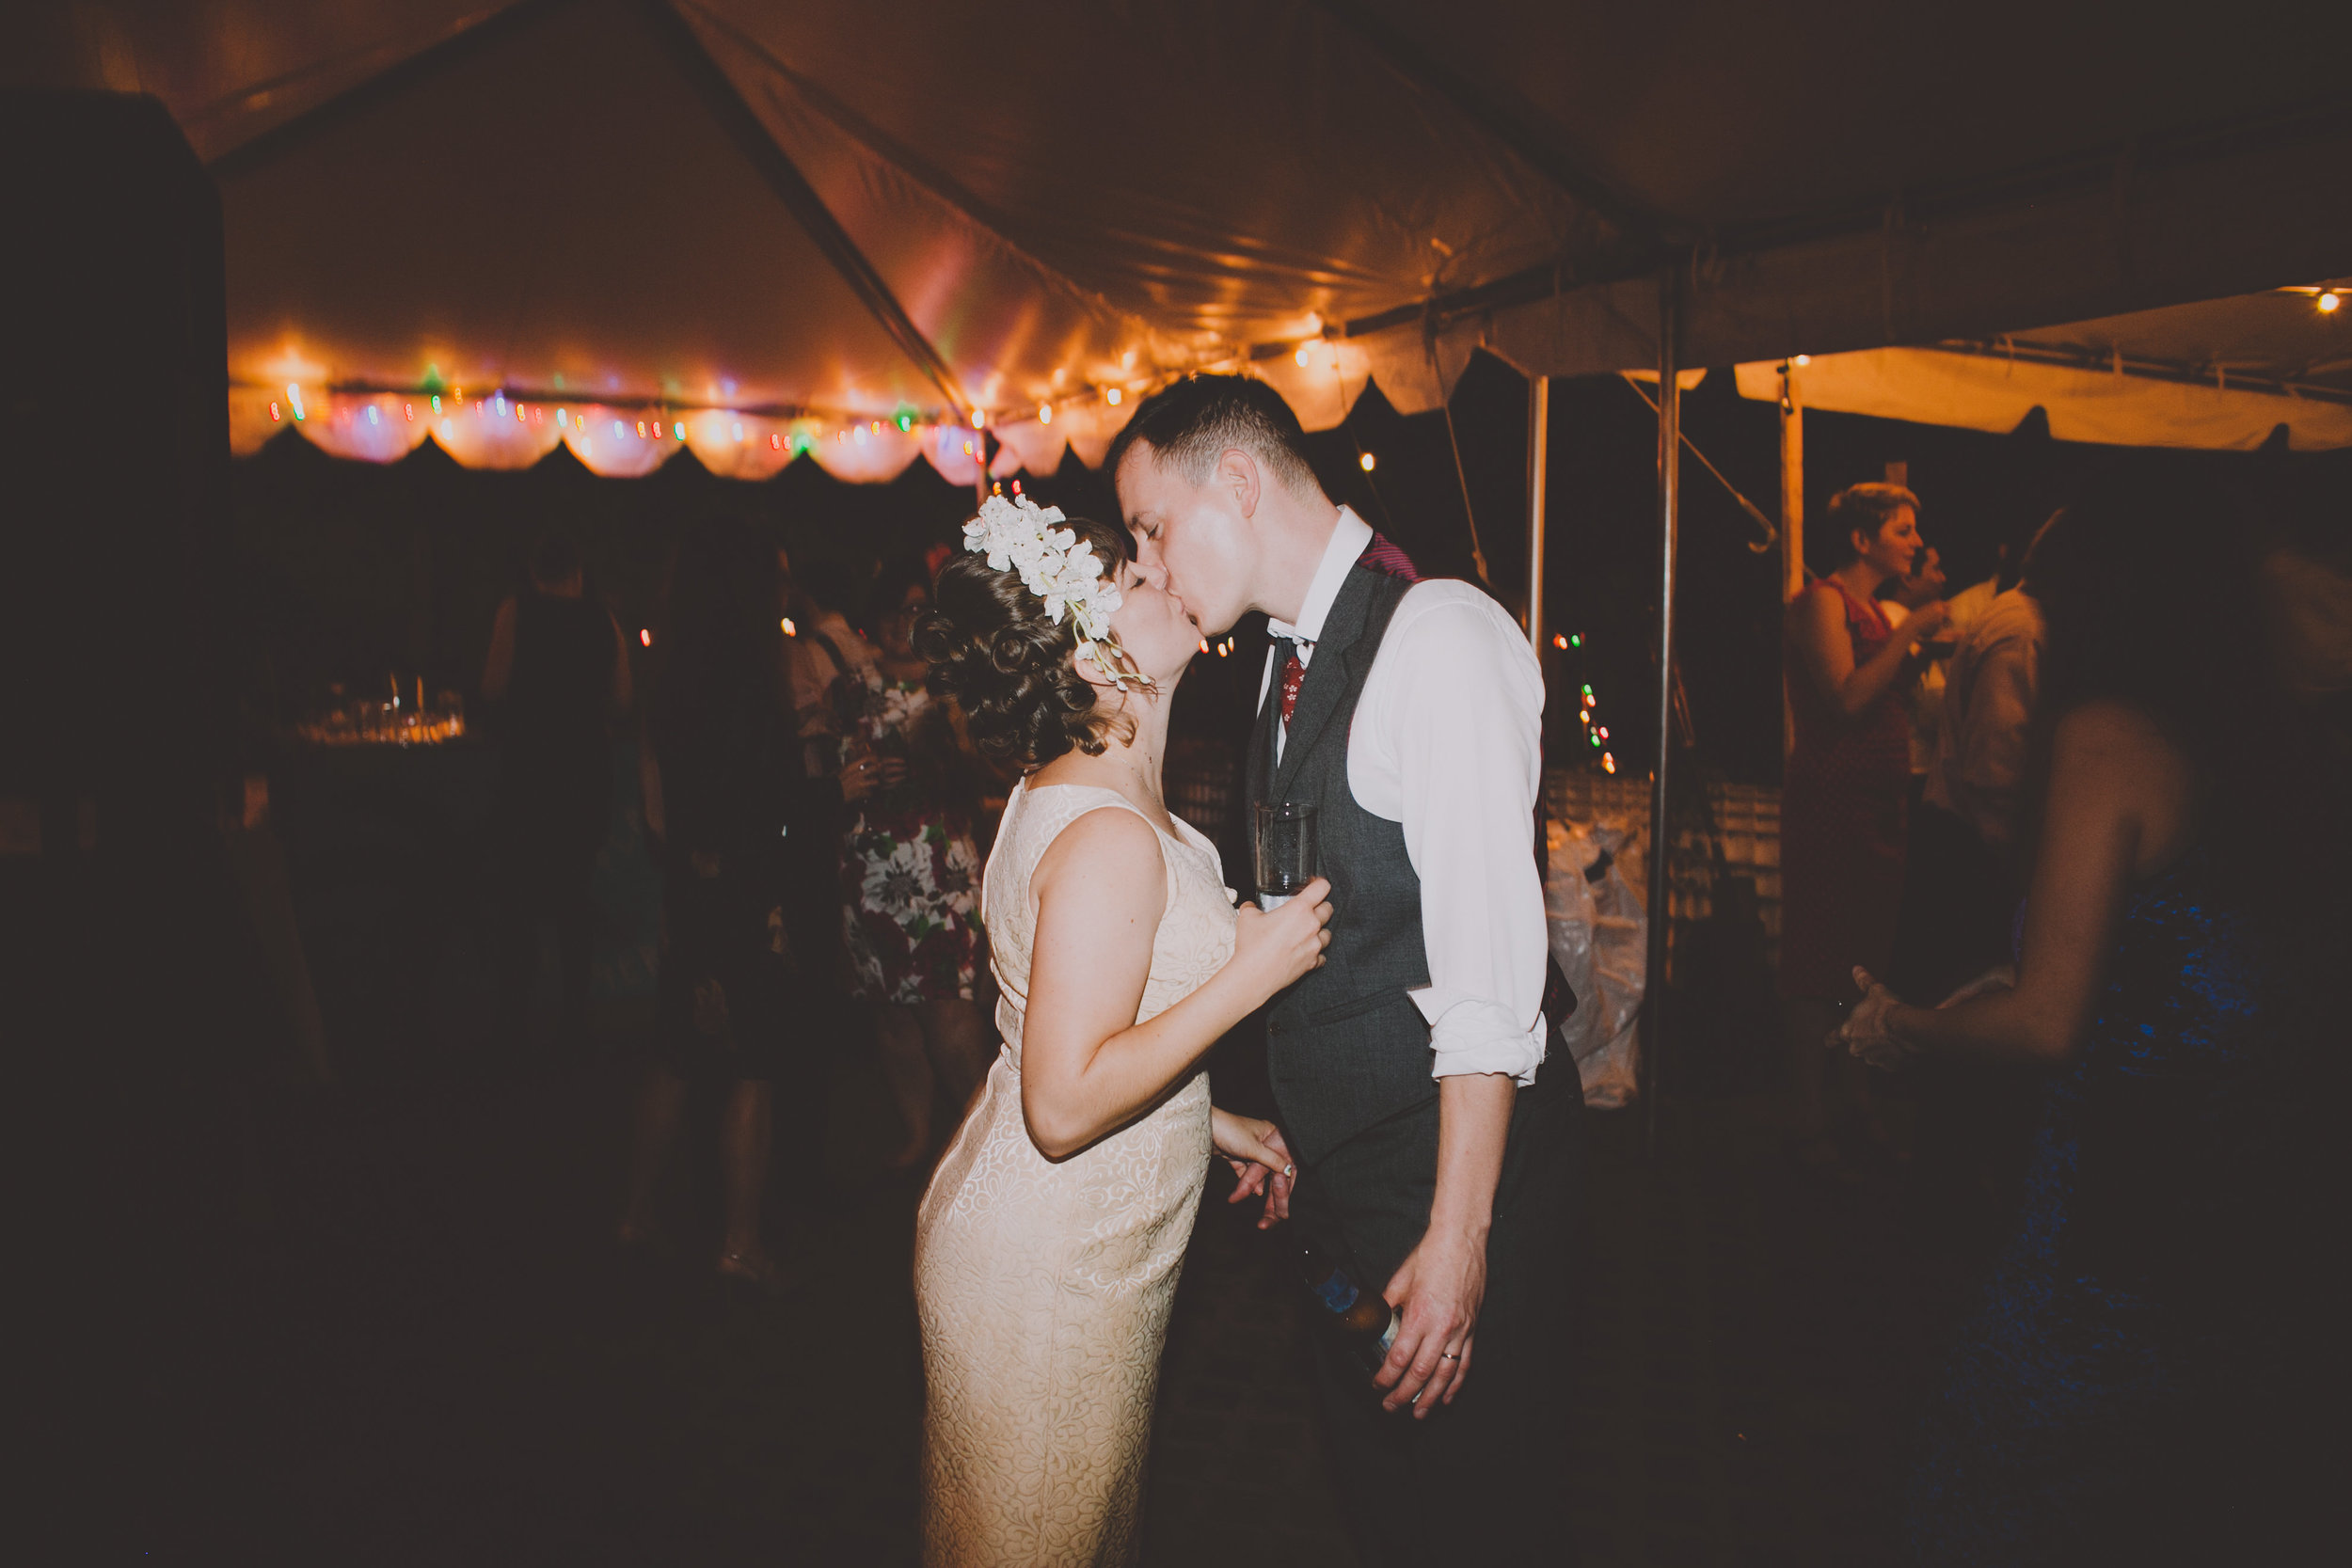 Robertas_Bushwick_Wedding_Tiki_Photography366.JPG